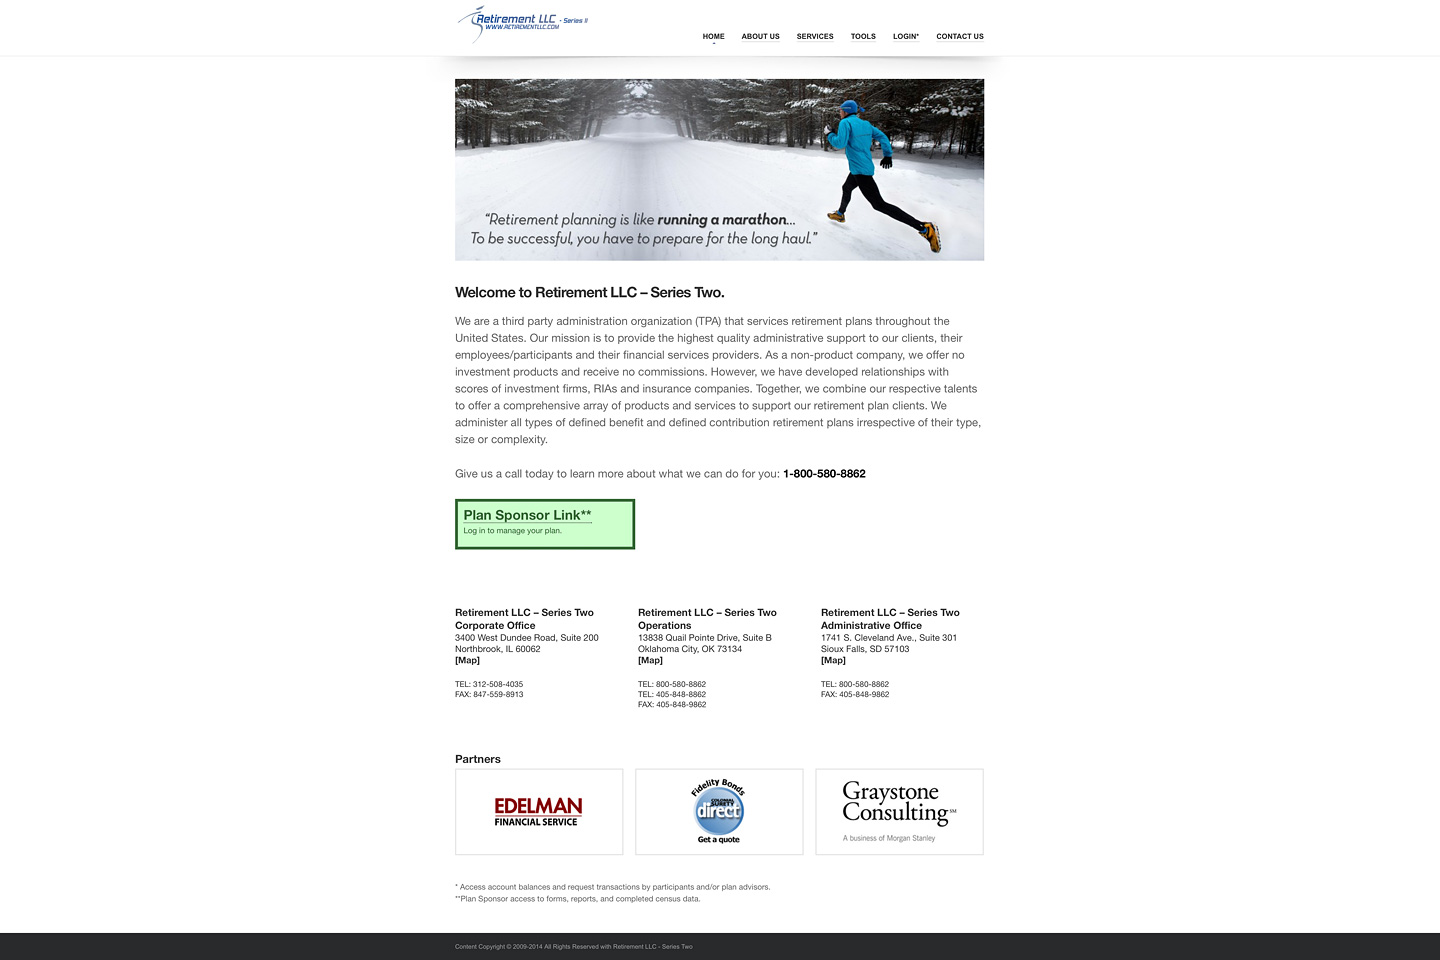 a screen capture of the retirementllc.com homepage which features a wide screen image carousel and a responsive layout